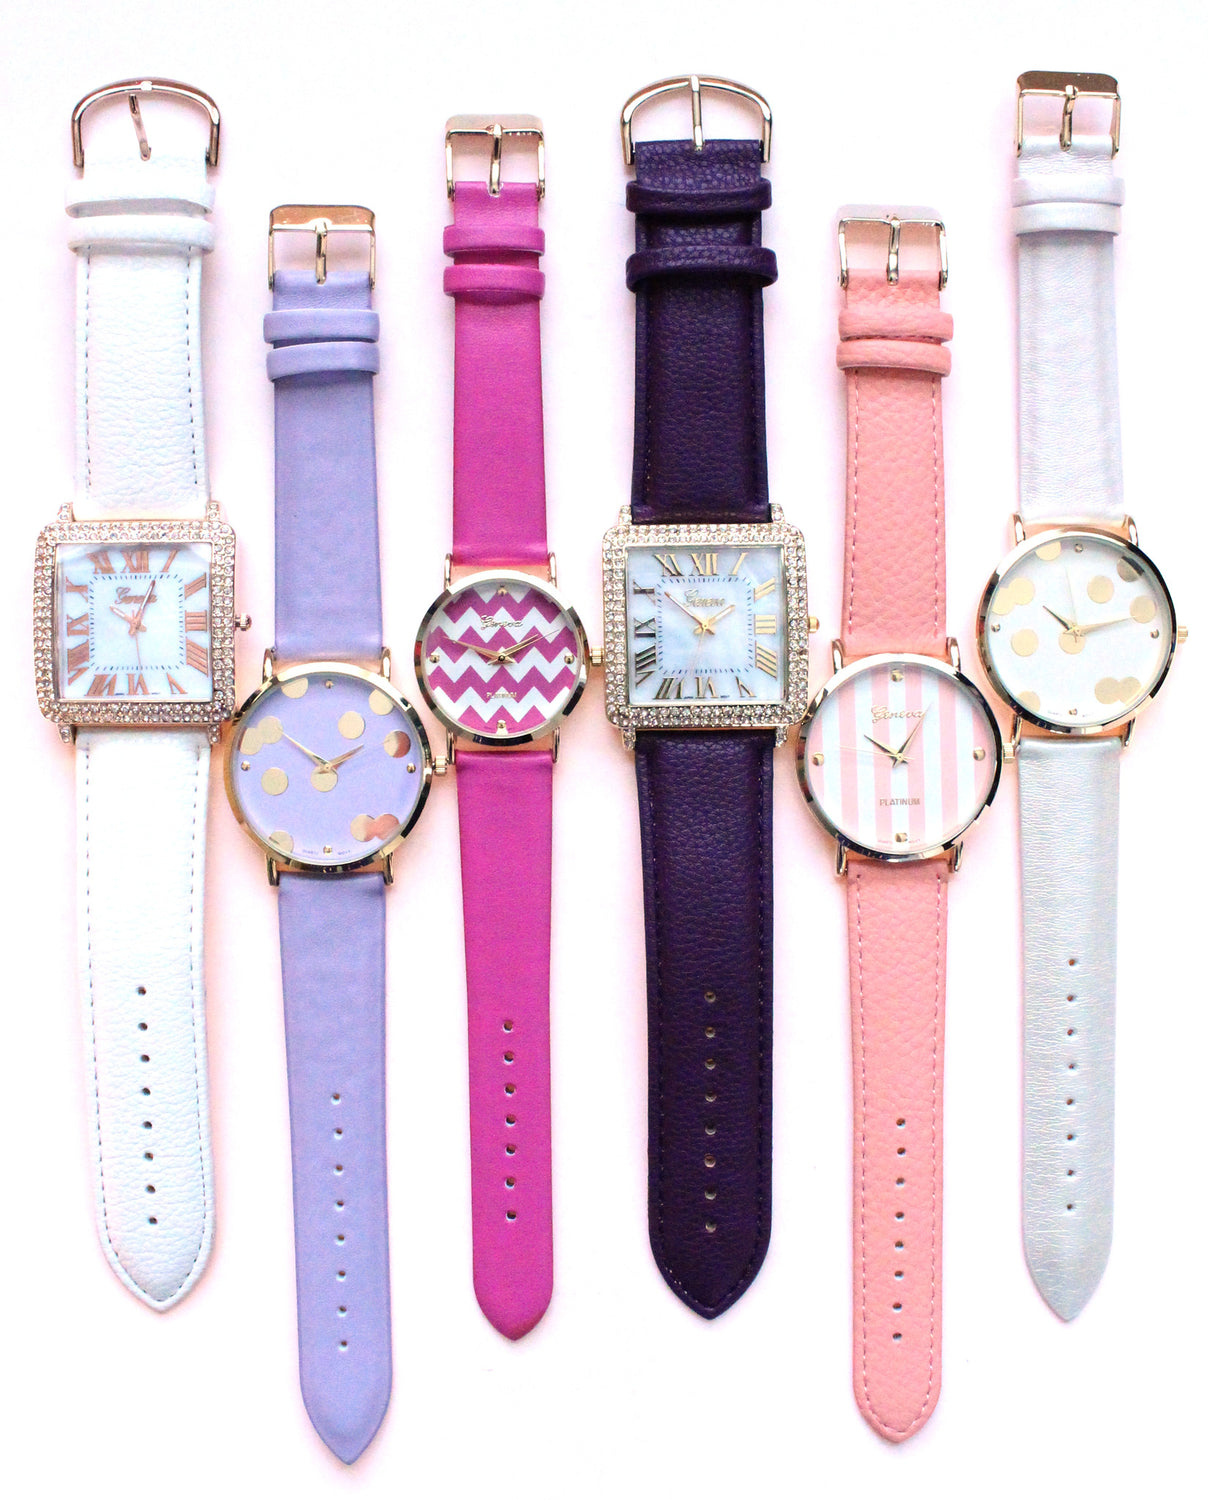 BE MINE Sweetheart Collection of Watches